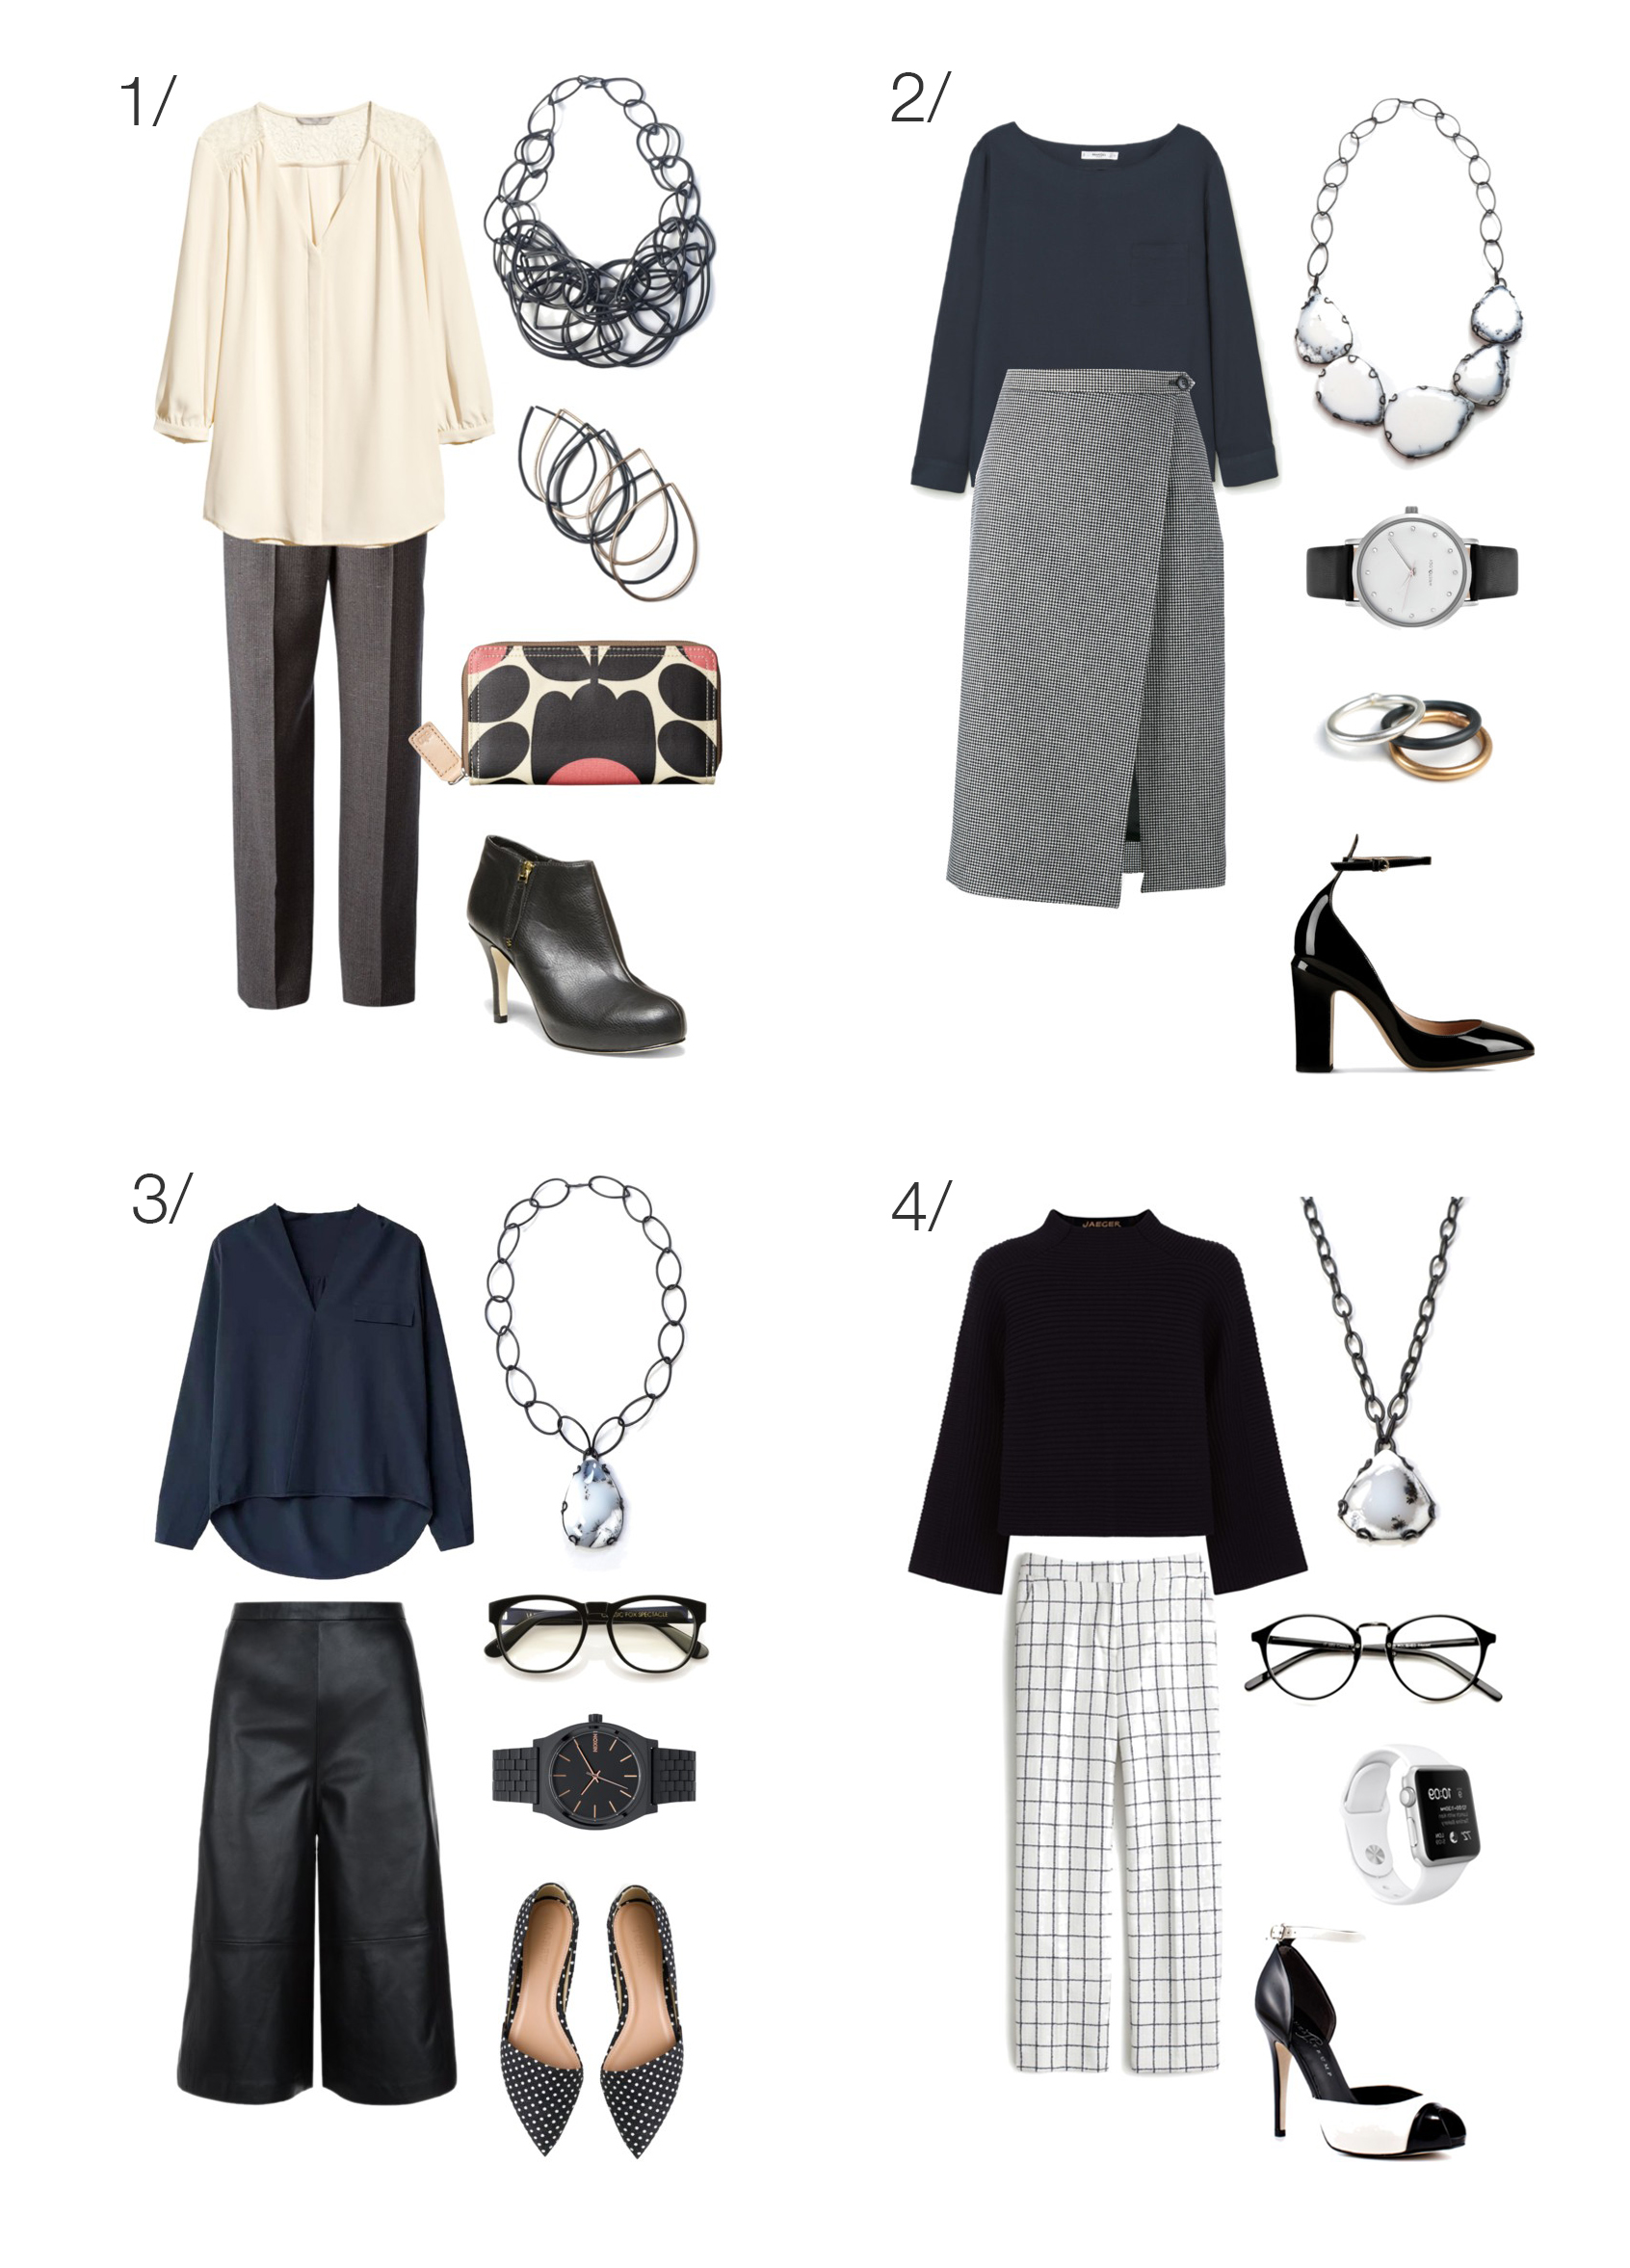 professional style: 8 simple and chic outfits to wear to work // click through for outfit details